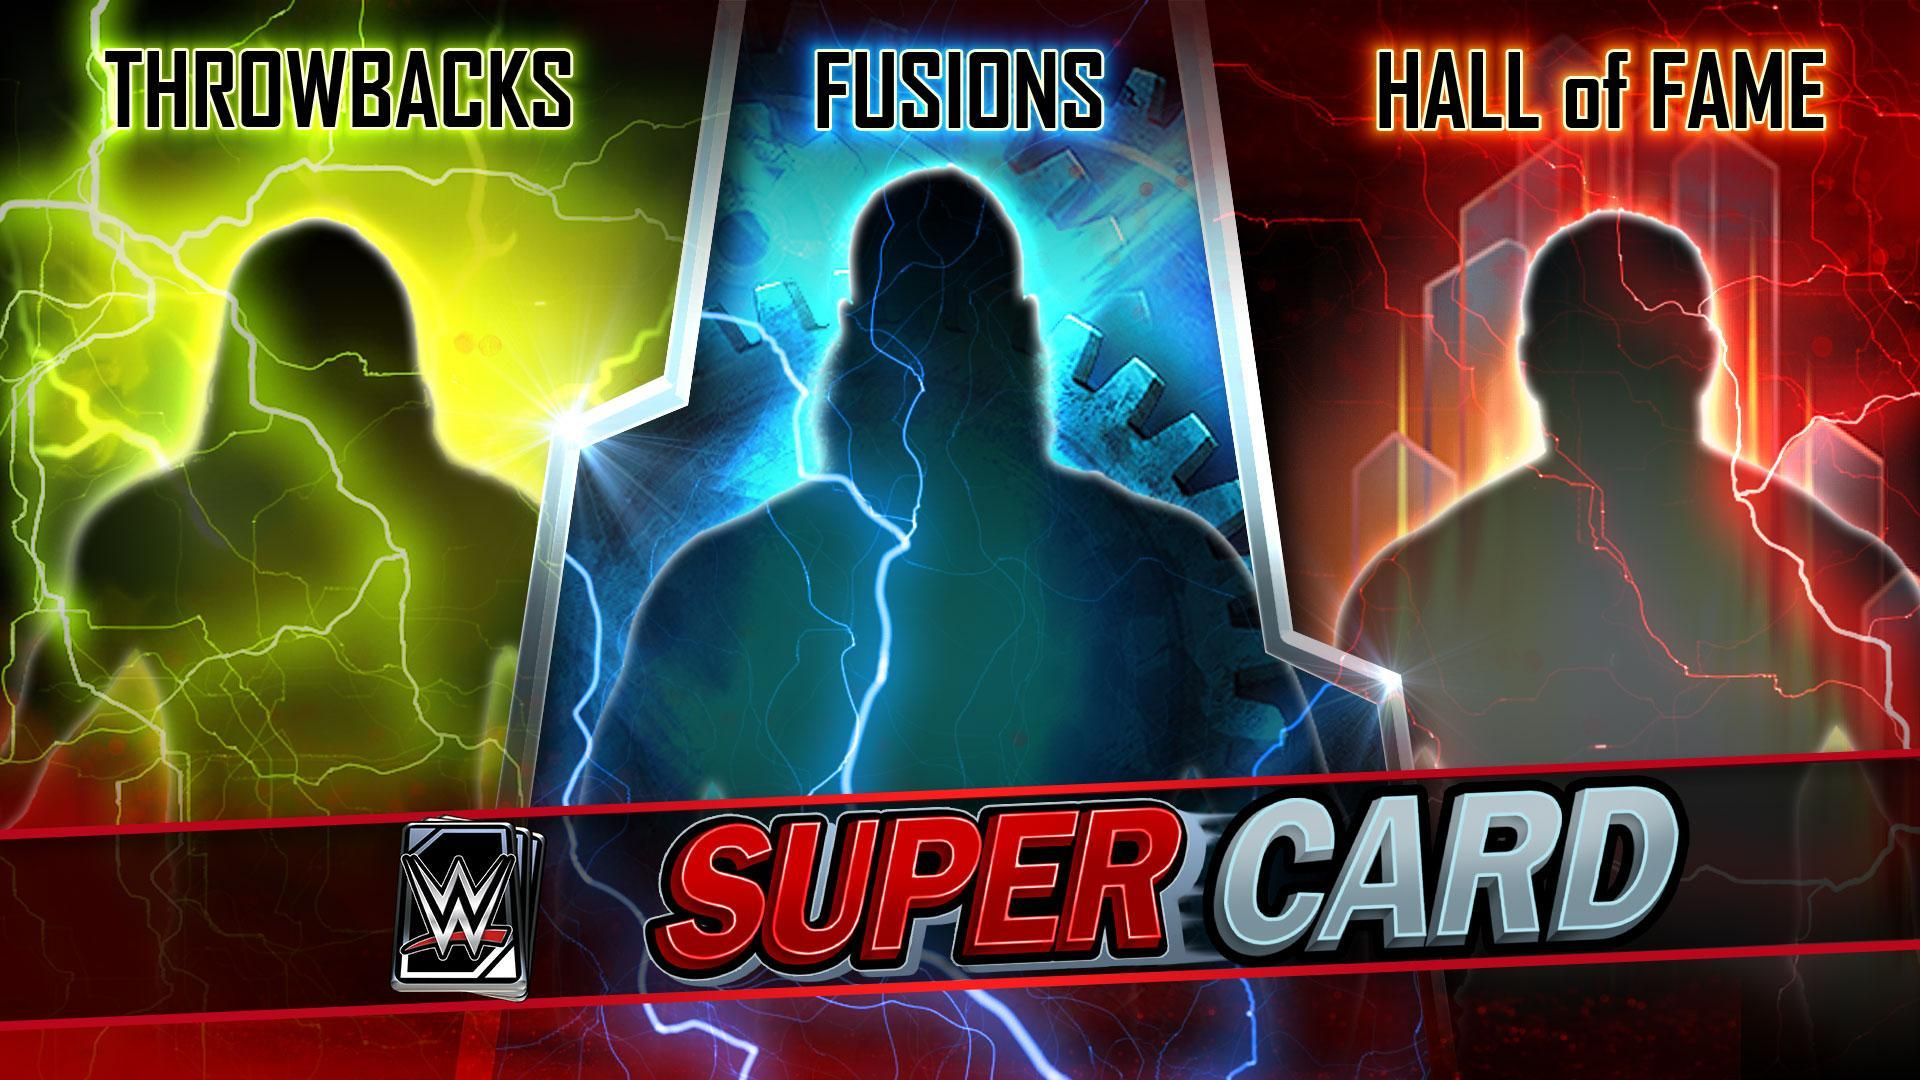 WWE SuperCard adds S4 Throwback, Fusion and WWE Hall of Fame Cards